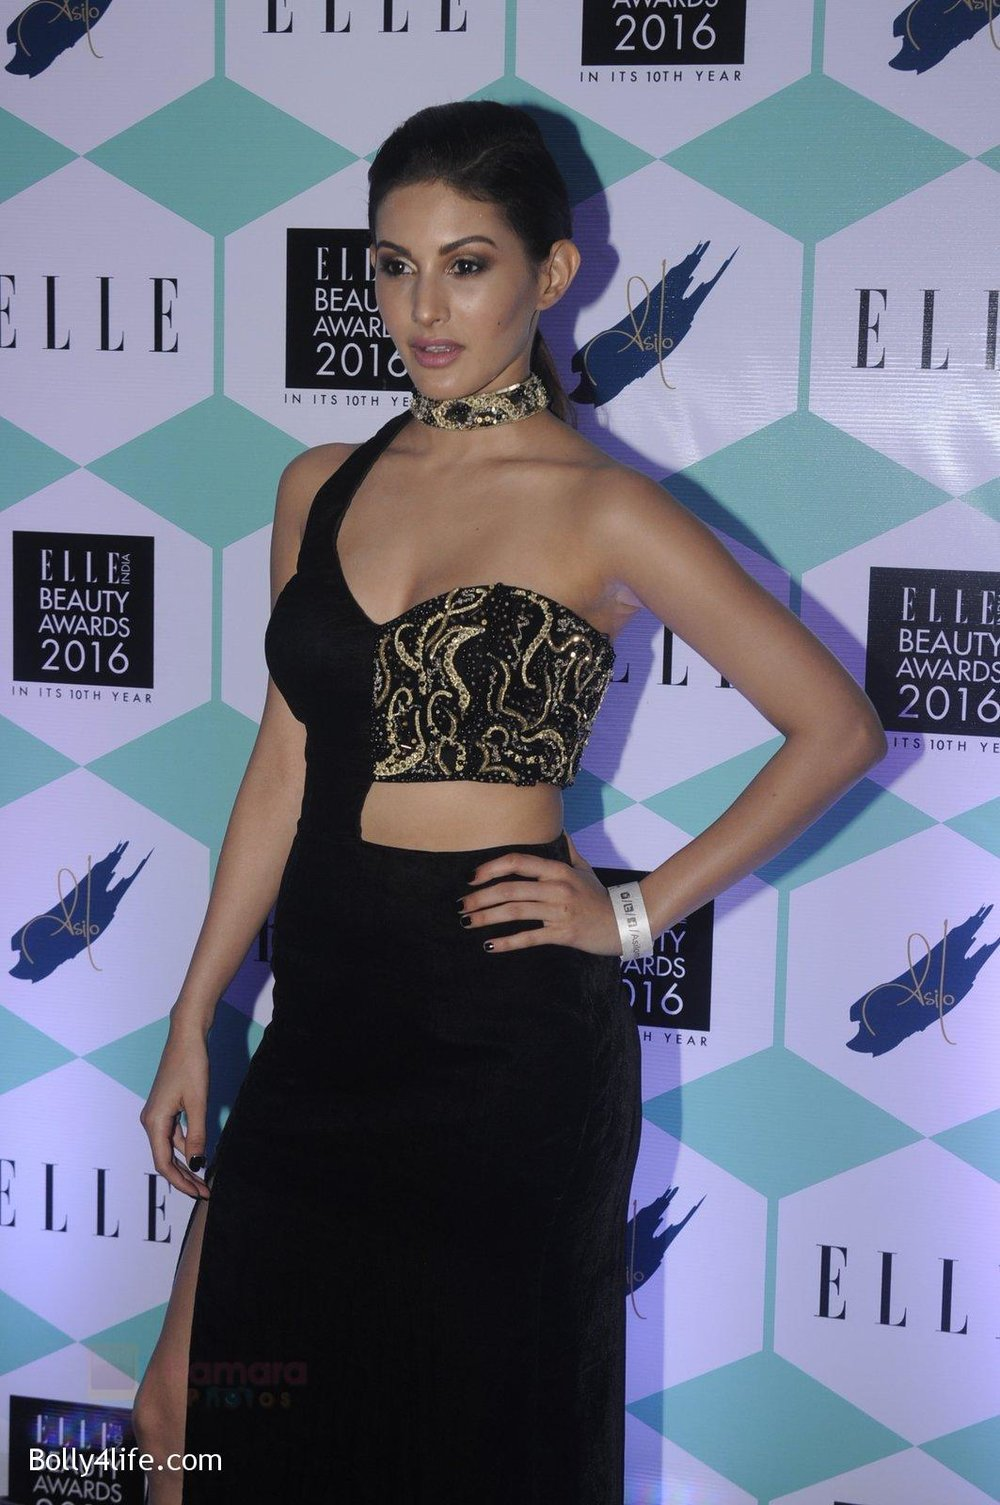 Amyra-Dastur-at-Elle-Beauty-Awards-on-5th-Oct-2016-32.jpg